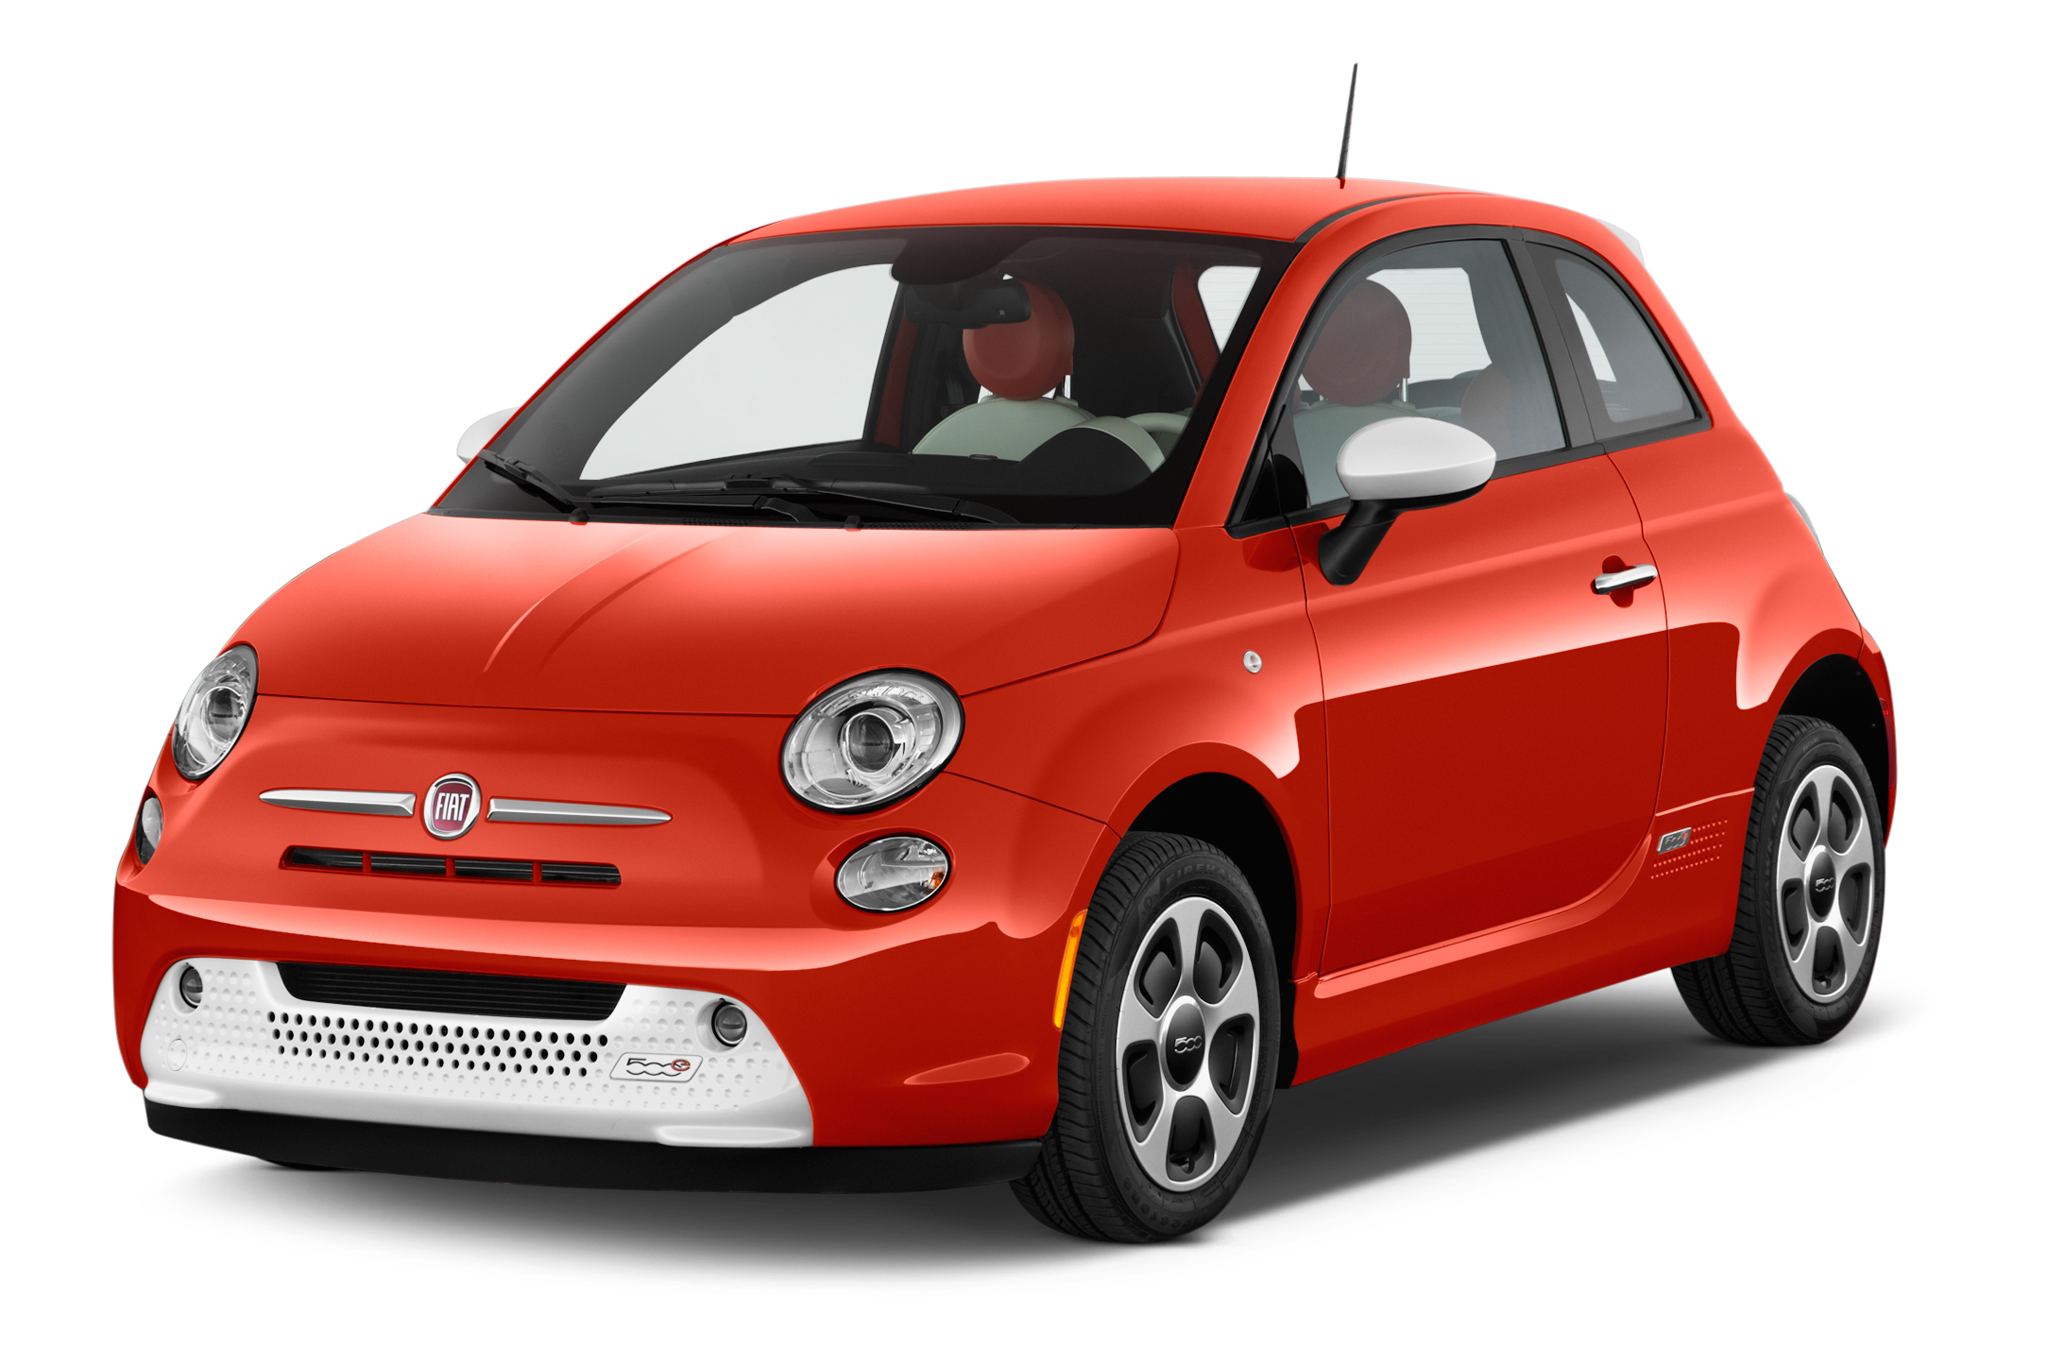 vectors stock fiat images a in search word concept shutterstock dictionary photos